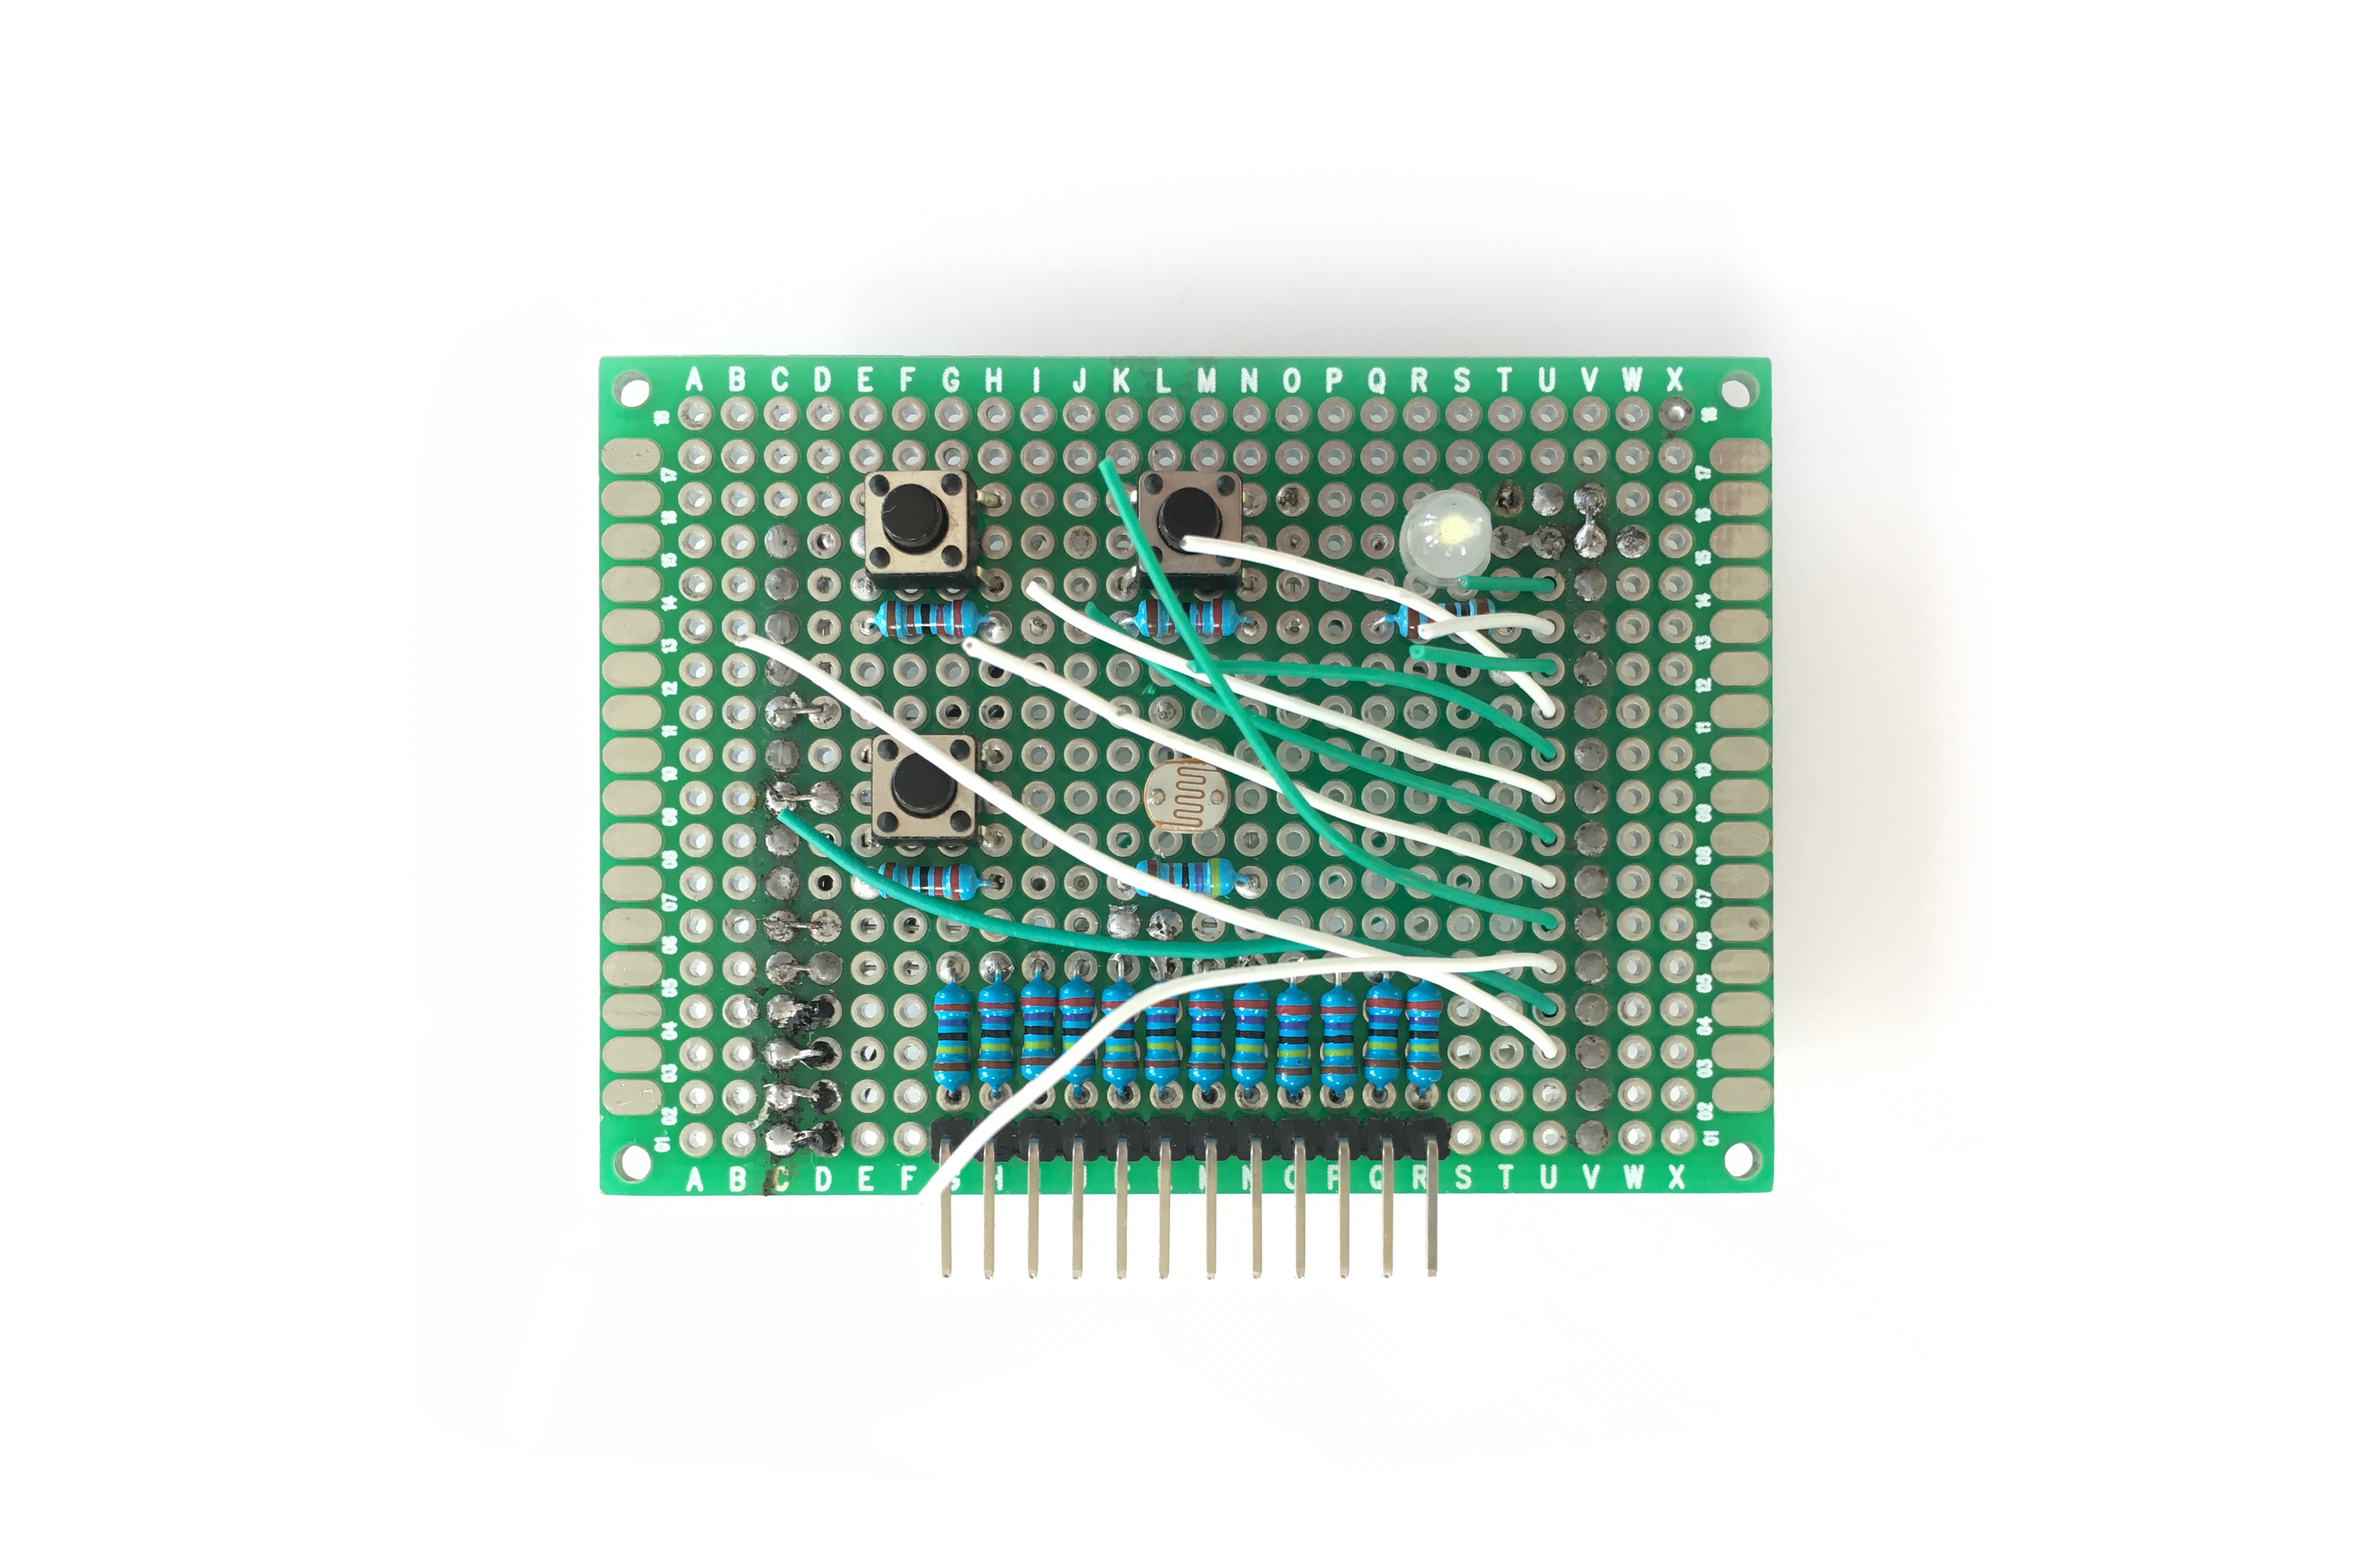 Picture of Finalising the PCB